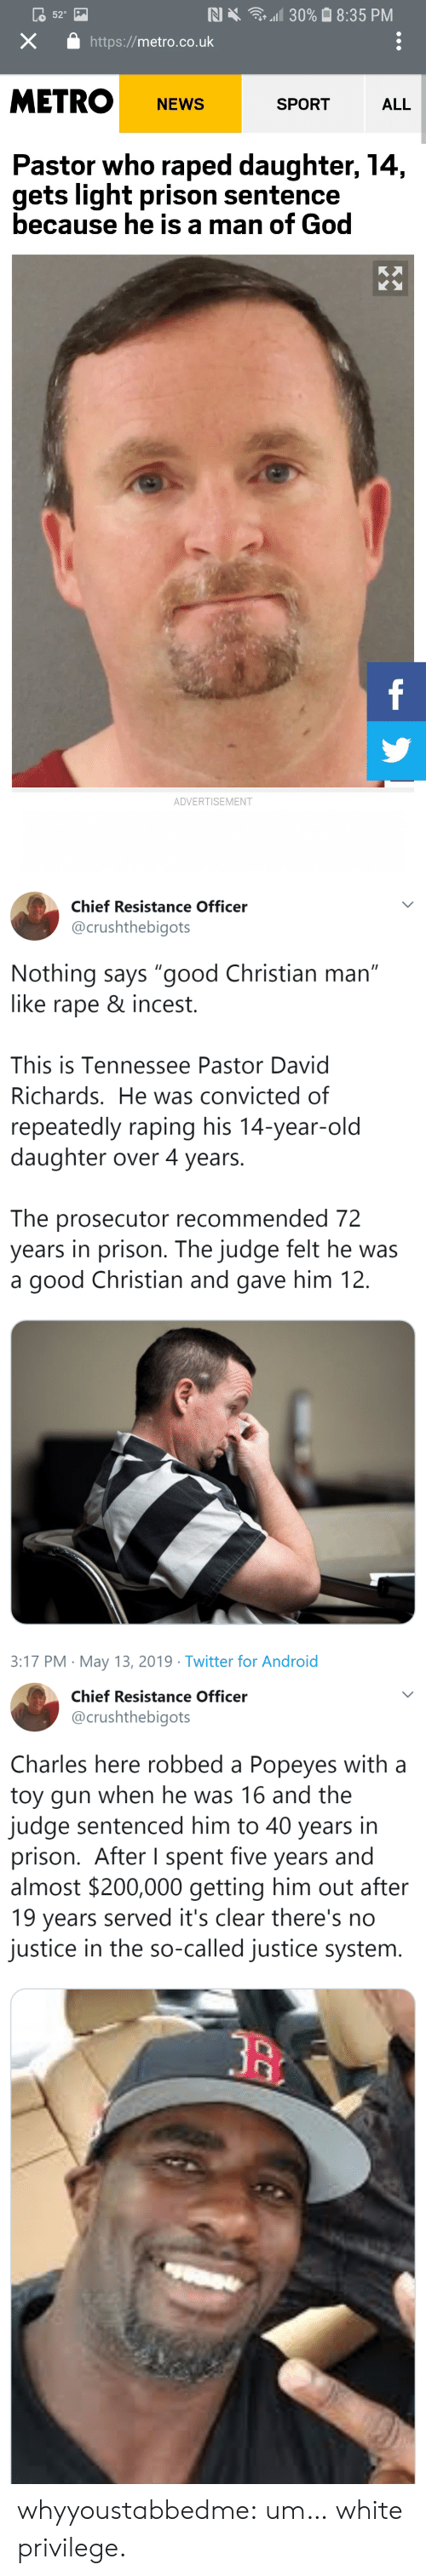 "Convicted: 30% 8:35 PM  N X  52  X  http://metro.co.uk  METRO  SPORT  NEWS  ALL  Pastor who raped daughter, 14,  gets light prison sentence  because he is a man of God  f  ADVERTISEMENT   Chief Resistance Officer  @crushthebigots  Nothing says ""good Christian man""  like rape & incest.  II  This is Tennessee Pastor David  Richards. He was convicted of  repeatedly raping his 14-year-old  daughter over 4 years.  The prosecutor recommended 72  years in prison. The judge felt he was  good Christian and gave him 12.  a  3:17 PM May 13, 2019 Twitter for Android   Chief Resistance Officer  @crushthebigots  Charles here robbed a Popeyes with a  toy gun when he was 16 and the  judge sentenced him to 40 years in  prison. After I spent five years and  almost $200,000 getting him out after  19 years served it's clear there's no  justice in the so-called justice system. whyyoustabbedme:  um… white privilege."